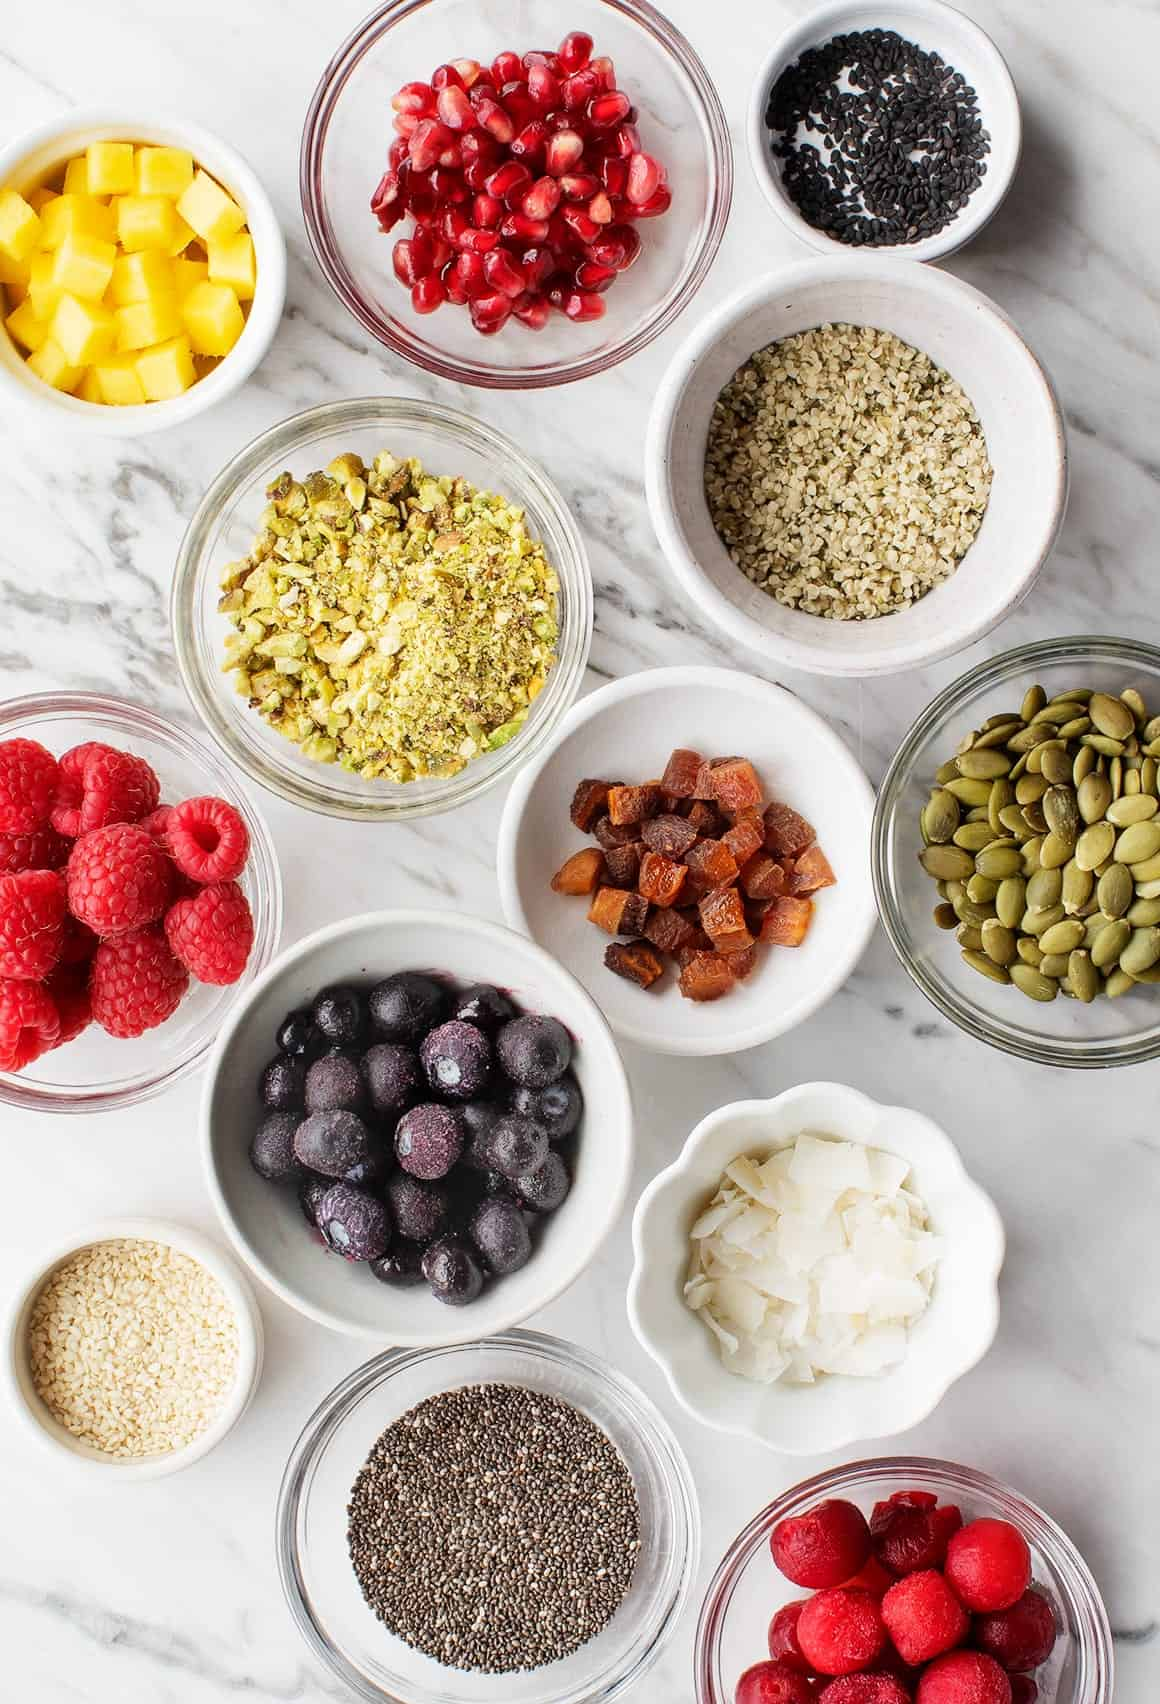 Ingredients for Overnight Oats, Many Ways